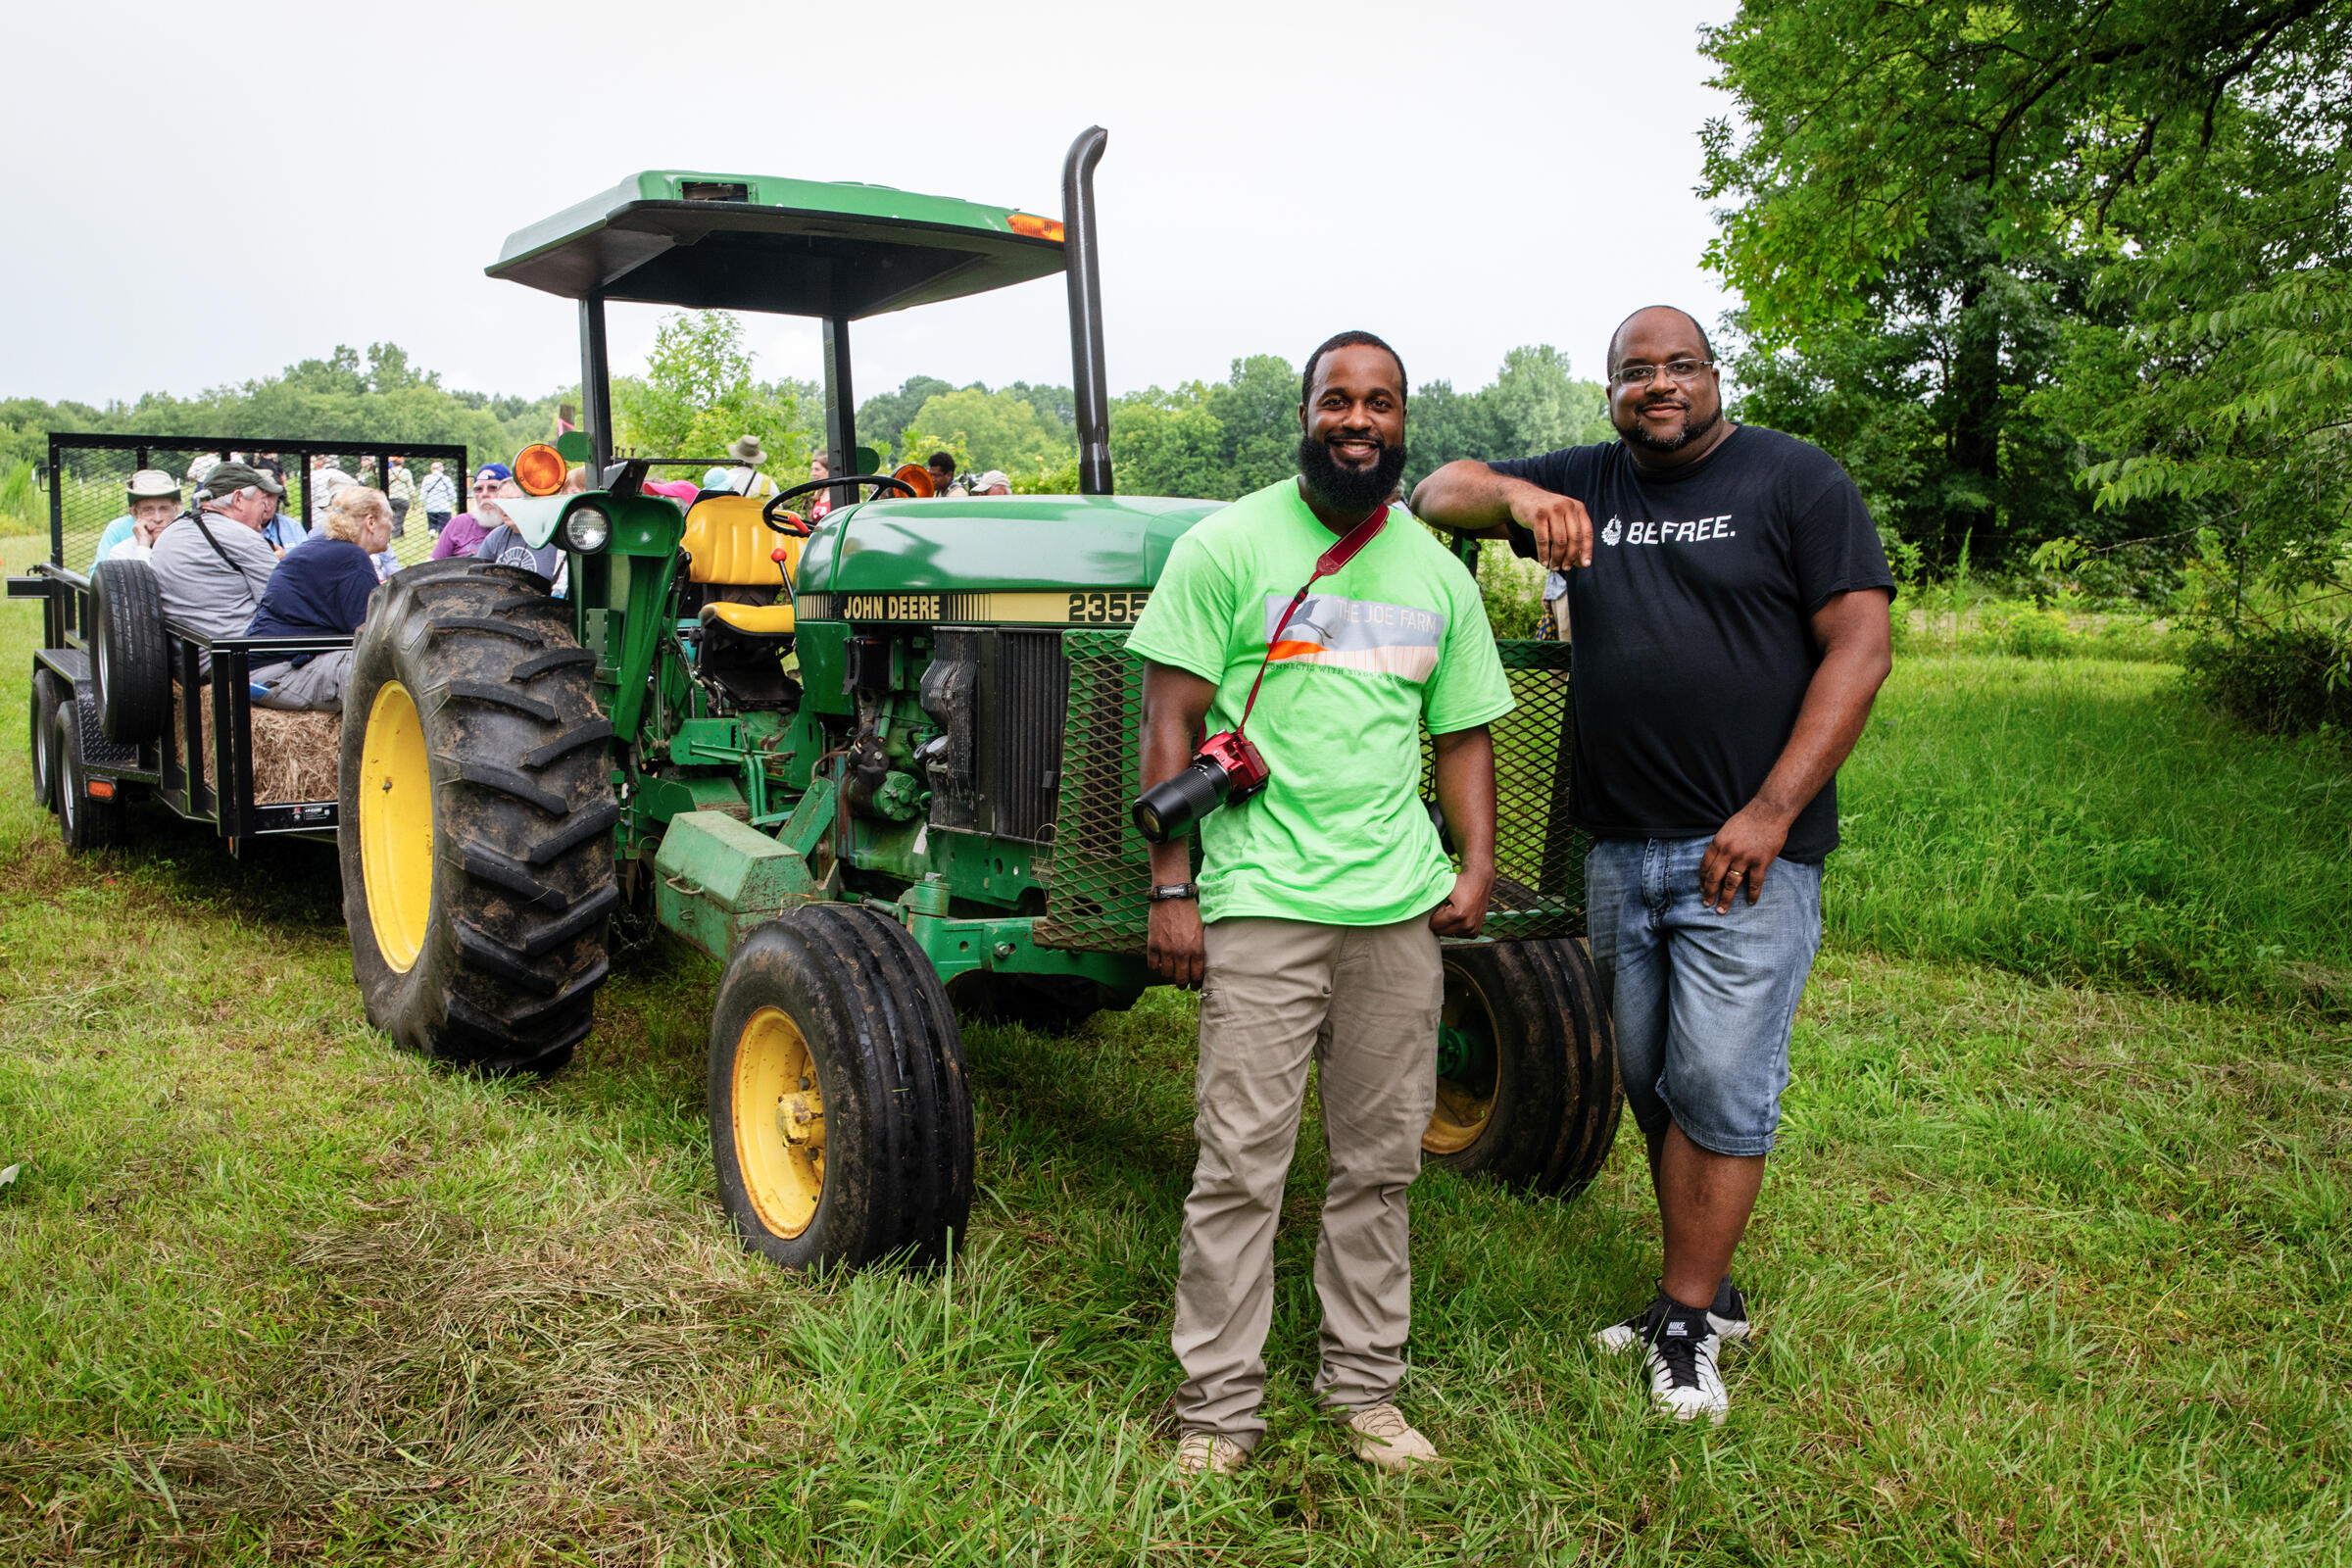 Two men—the one on the left in a green shirt and the other in a black shirt—smile at the camera and stand in front of a green tractor. Behind the tractor is a wagon filled with birders. More birders walk in the green field behind the wagon.